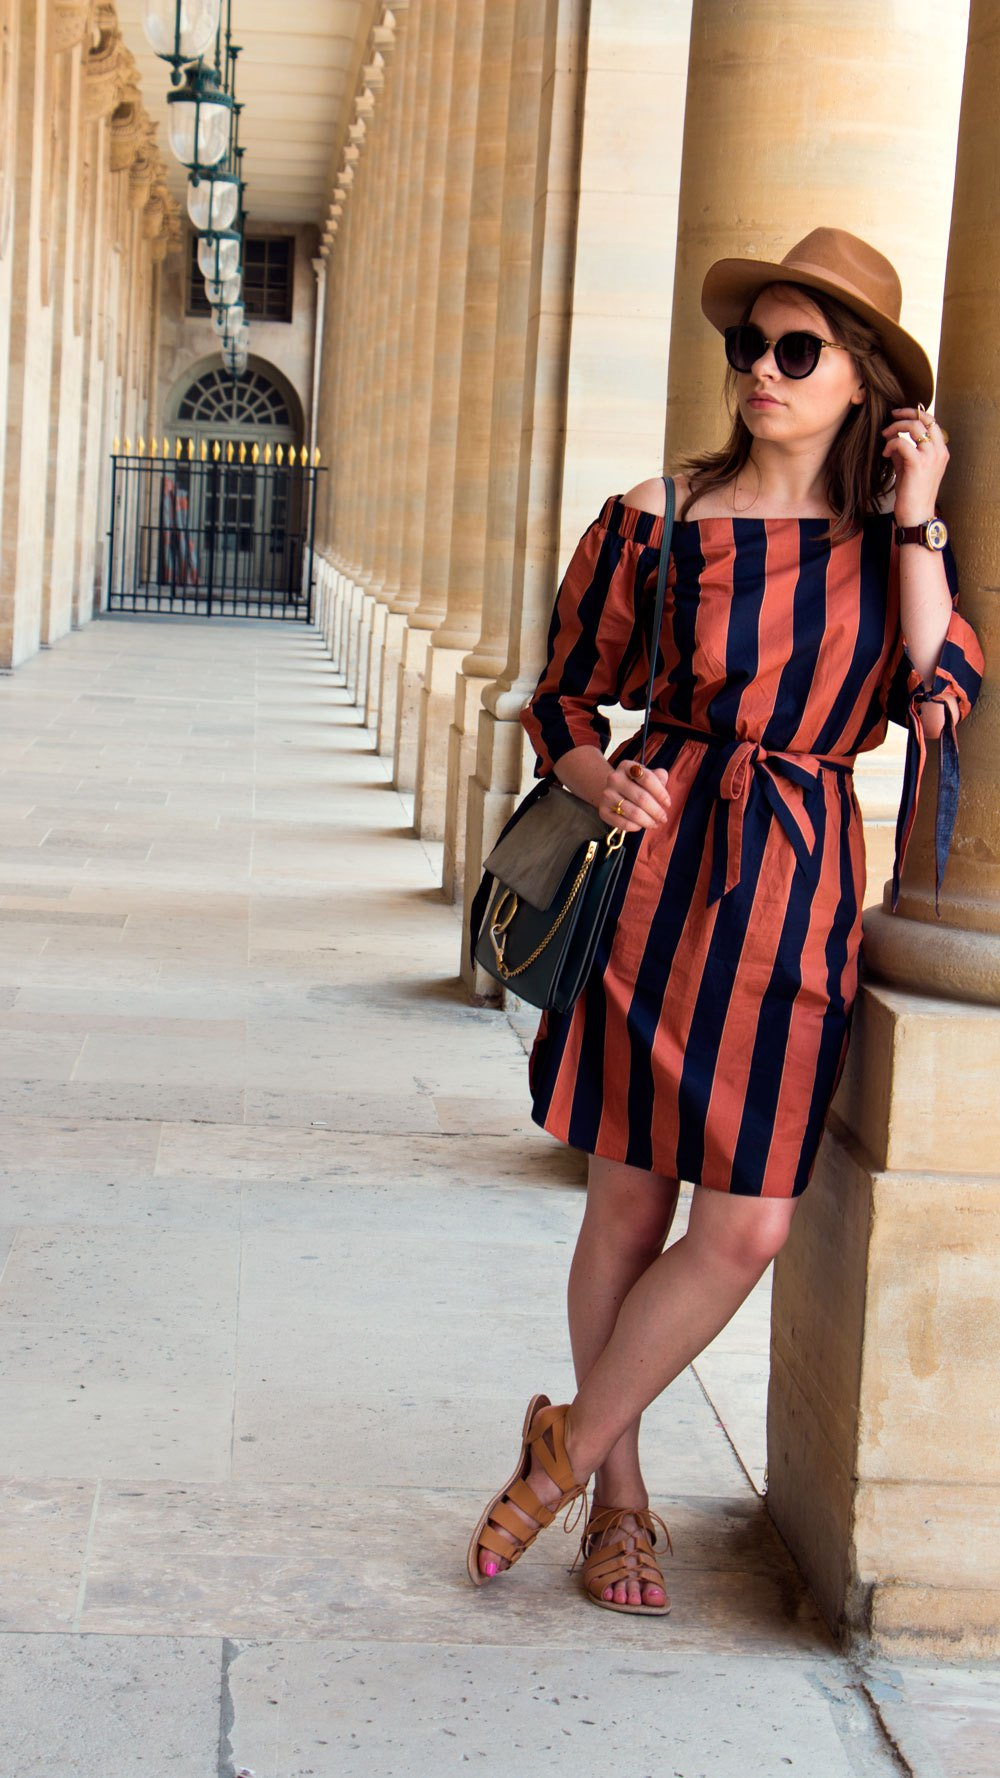 Outfit-Stripes-On-Stripes-Layering-Contrast-Fashion-Style-Blog-5.jpg